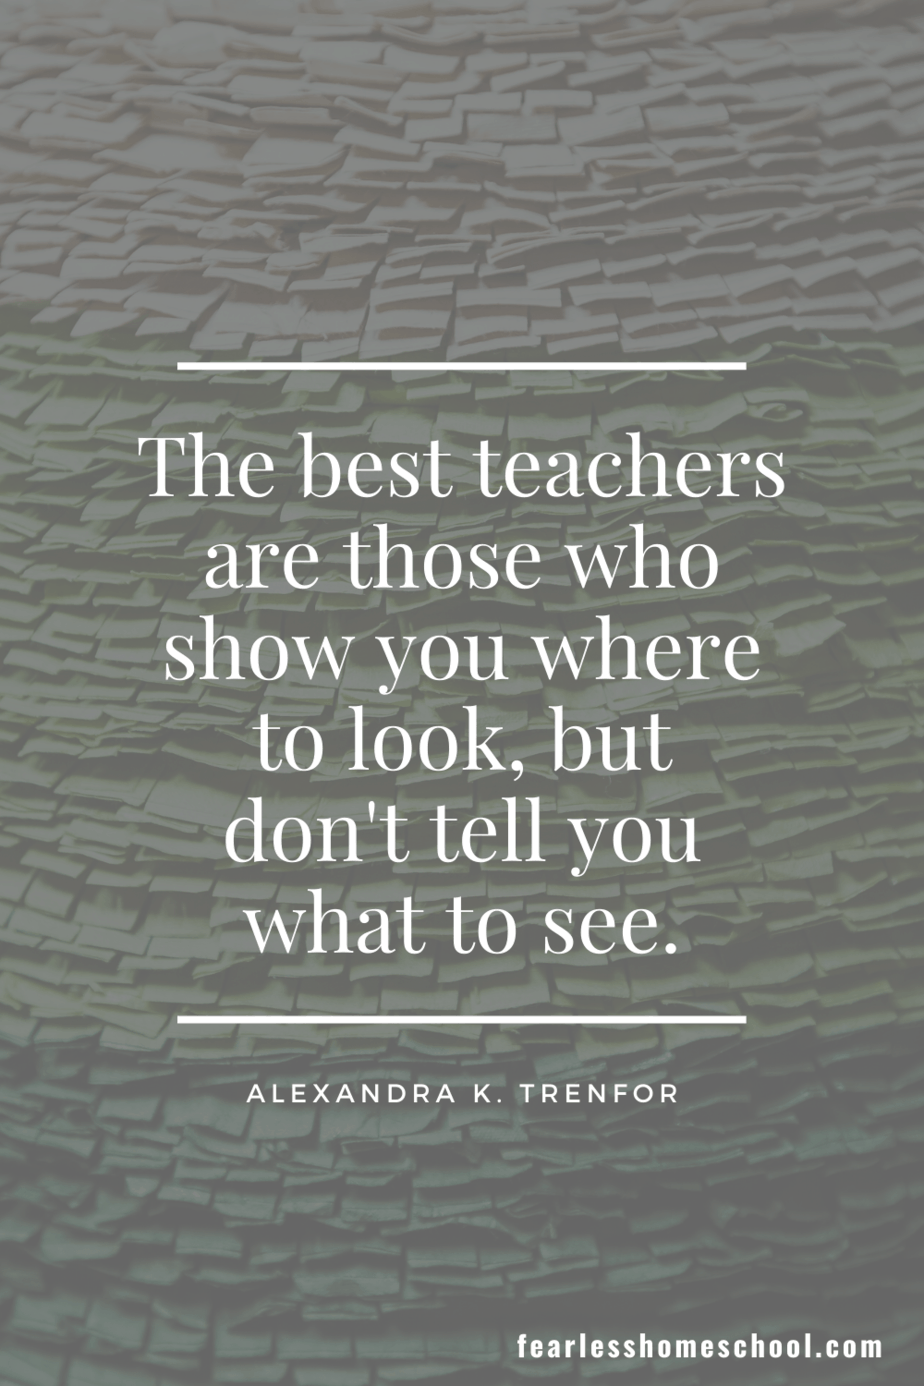 The best teachers are those who show you where to look, but don't tell you what to see. Alexandra K. Trenfor homeschooling quote